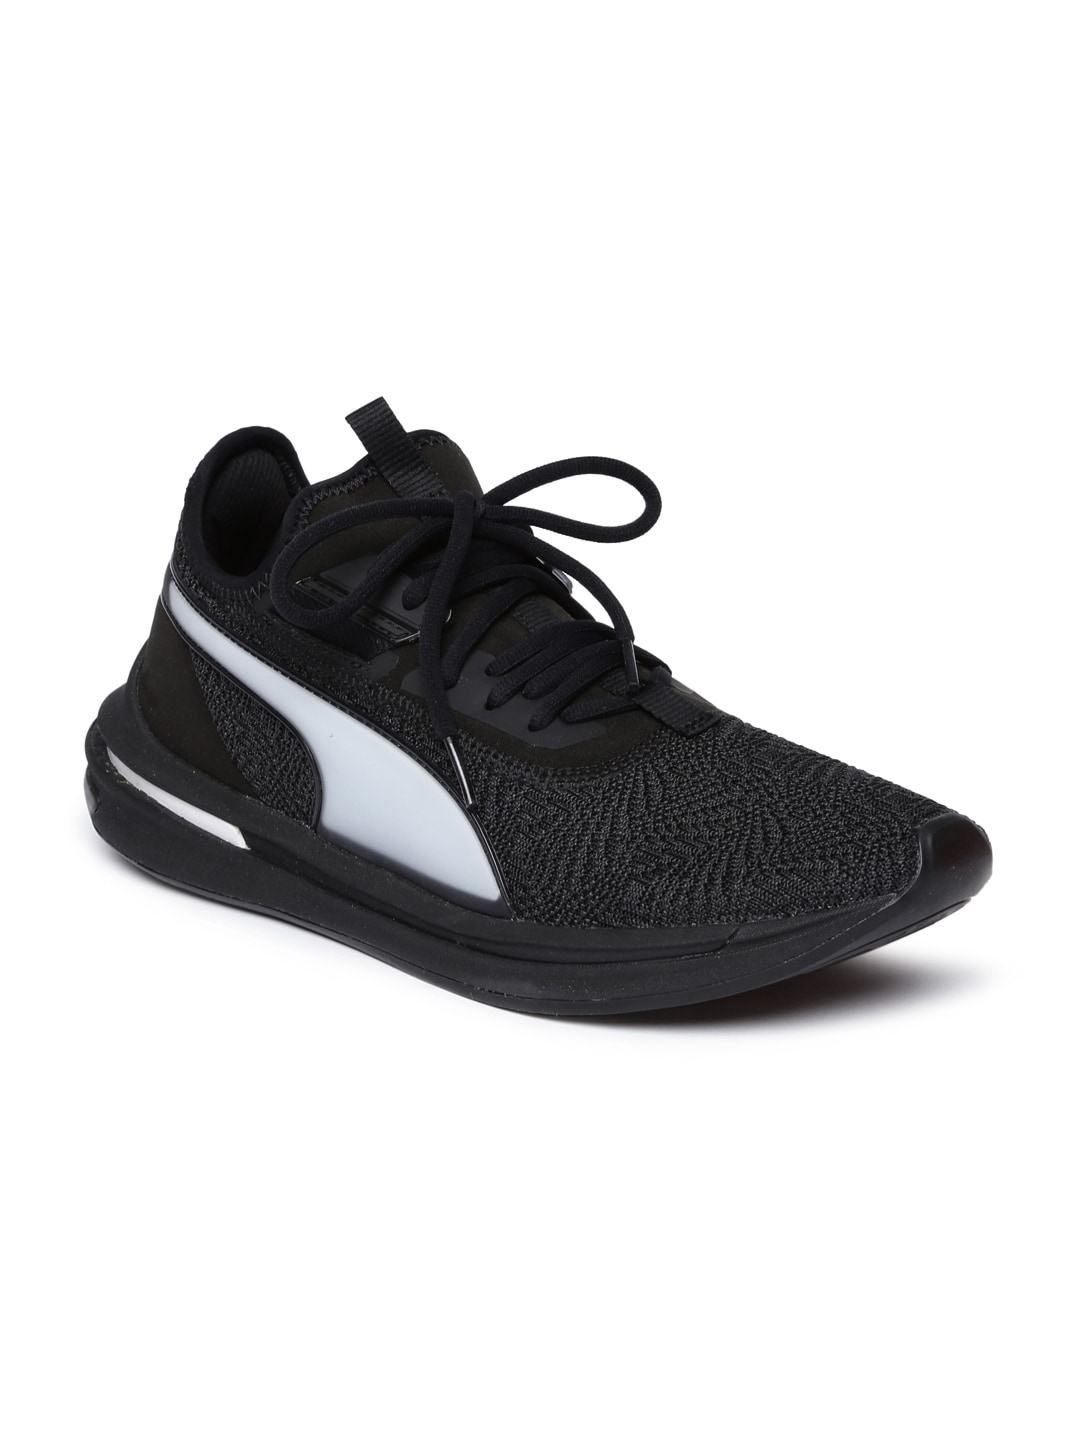 Puma Shoes - Buy Puma Shoes for Men   Women Online in India b565a680bf3c